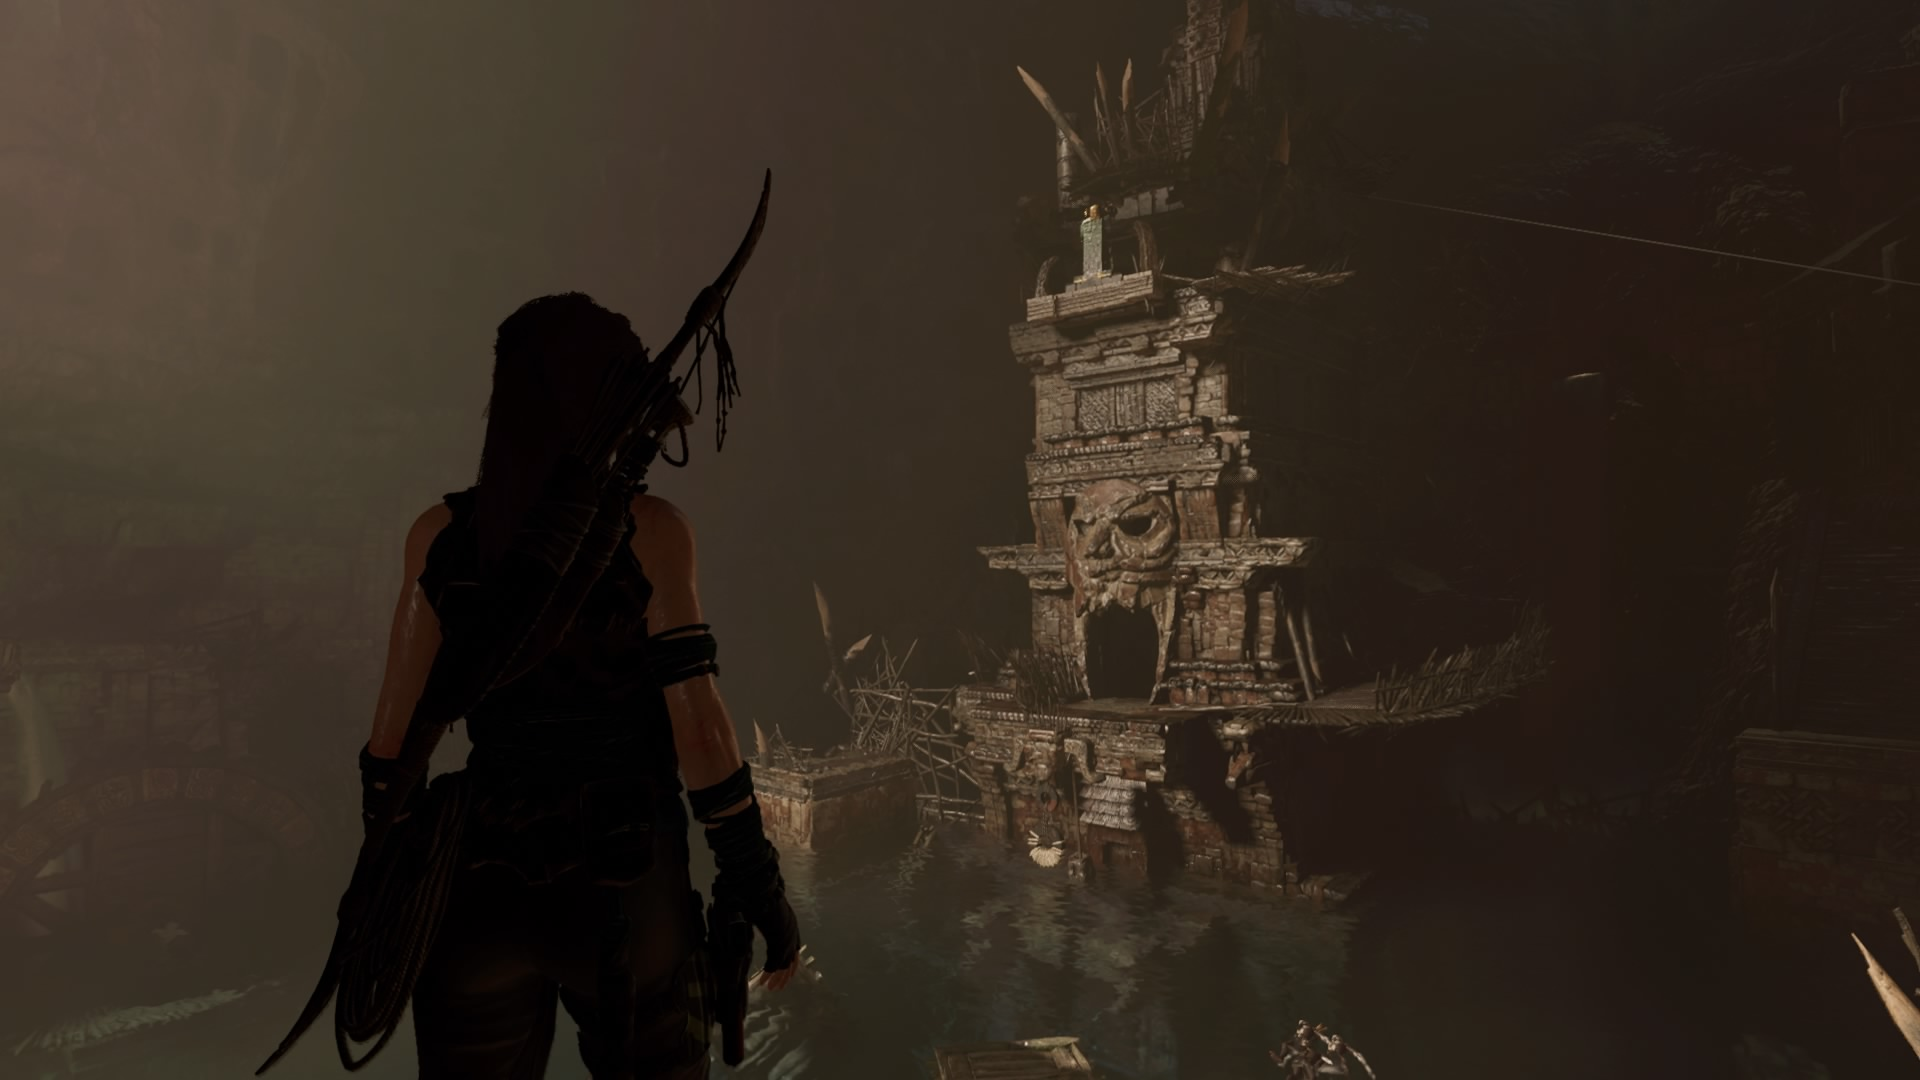 [Análise] Shadow of the Tomb Raider: Vale a Pena? 6